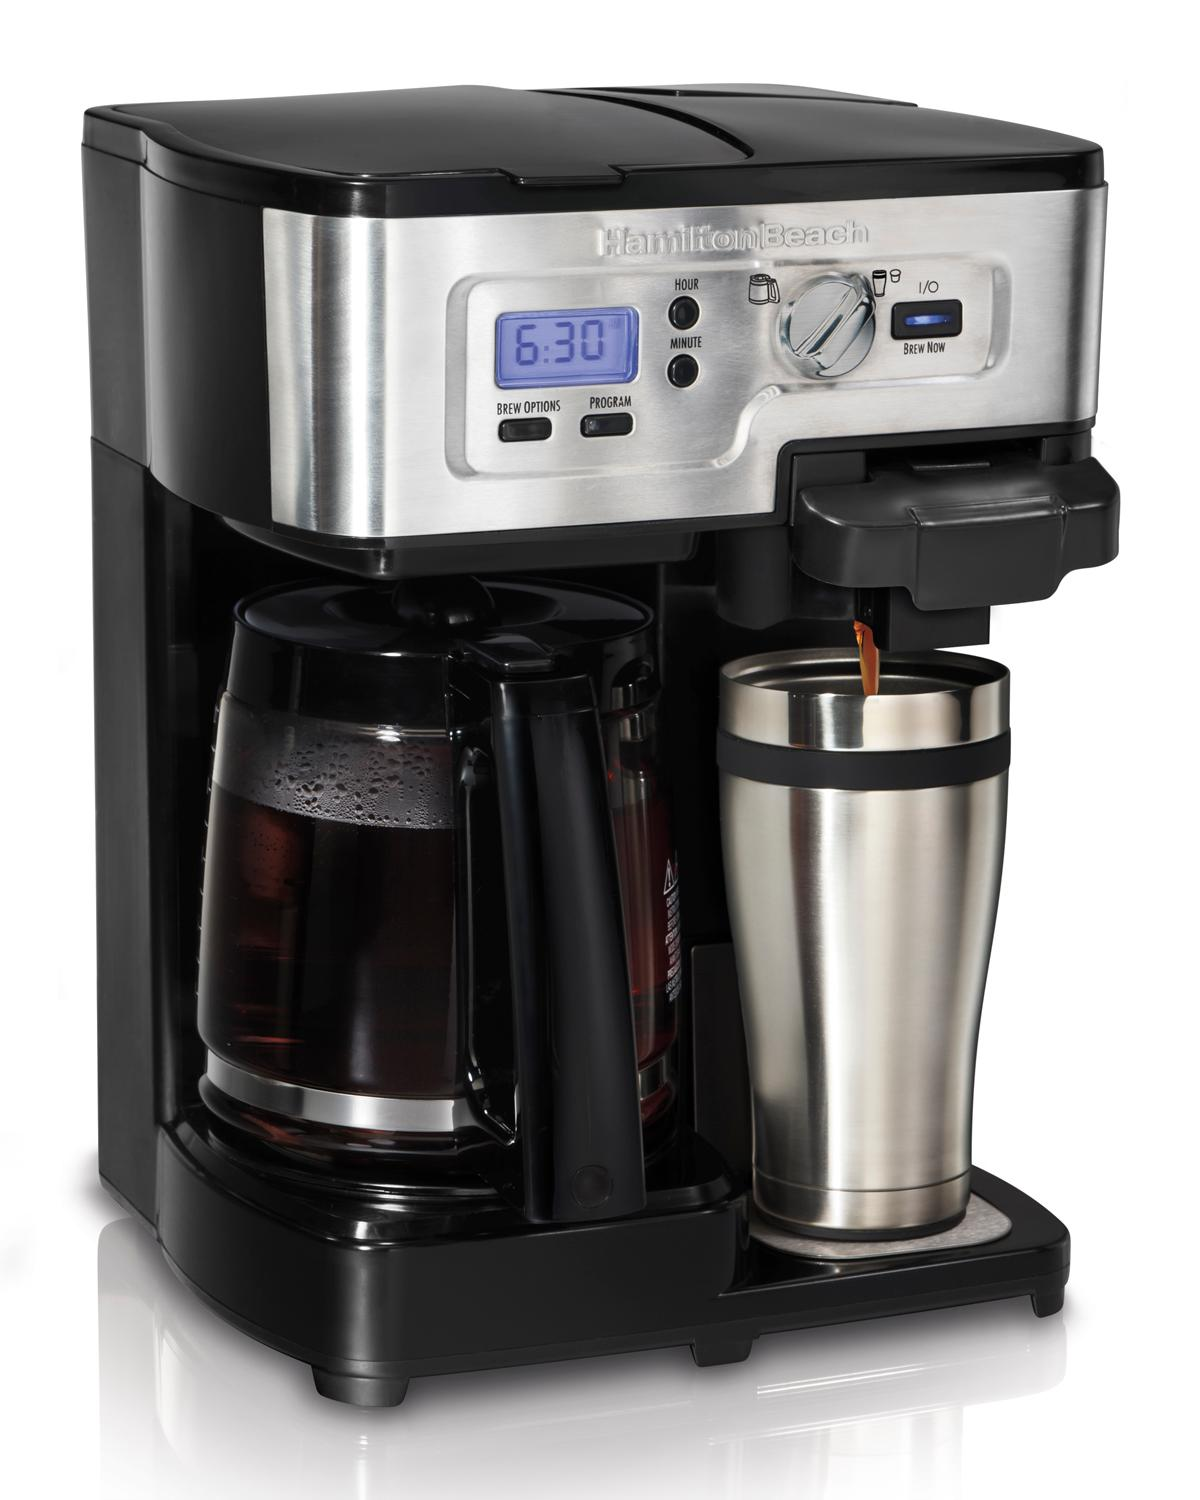 Coffee Makers Grind And Brew Amazon.com: Hamilton Beach Single Serve Coffee Brewer and ...